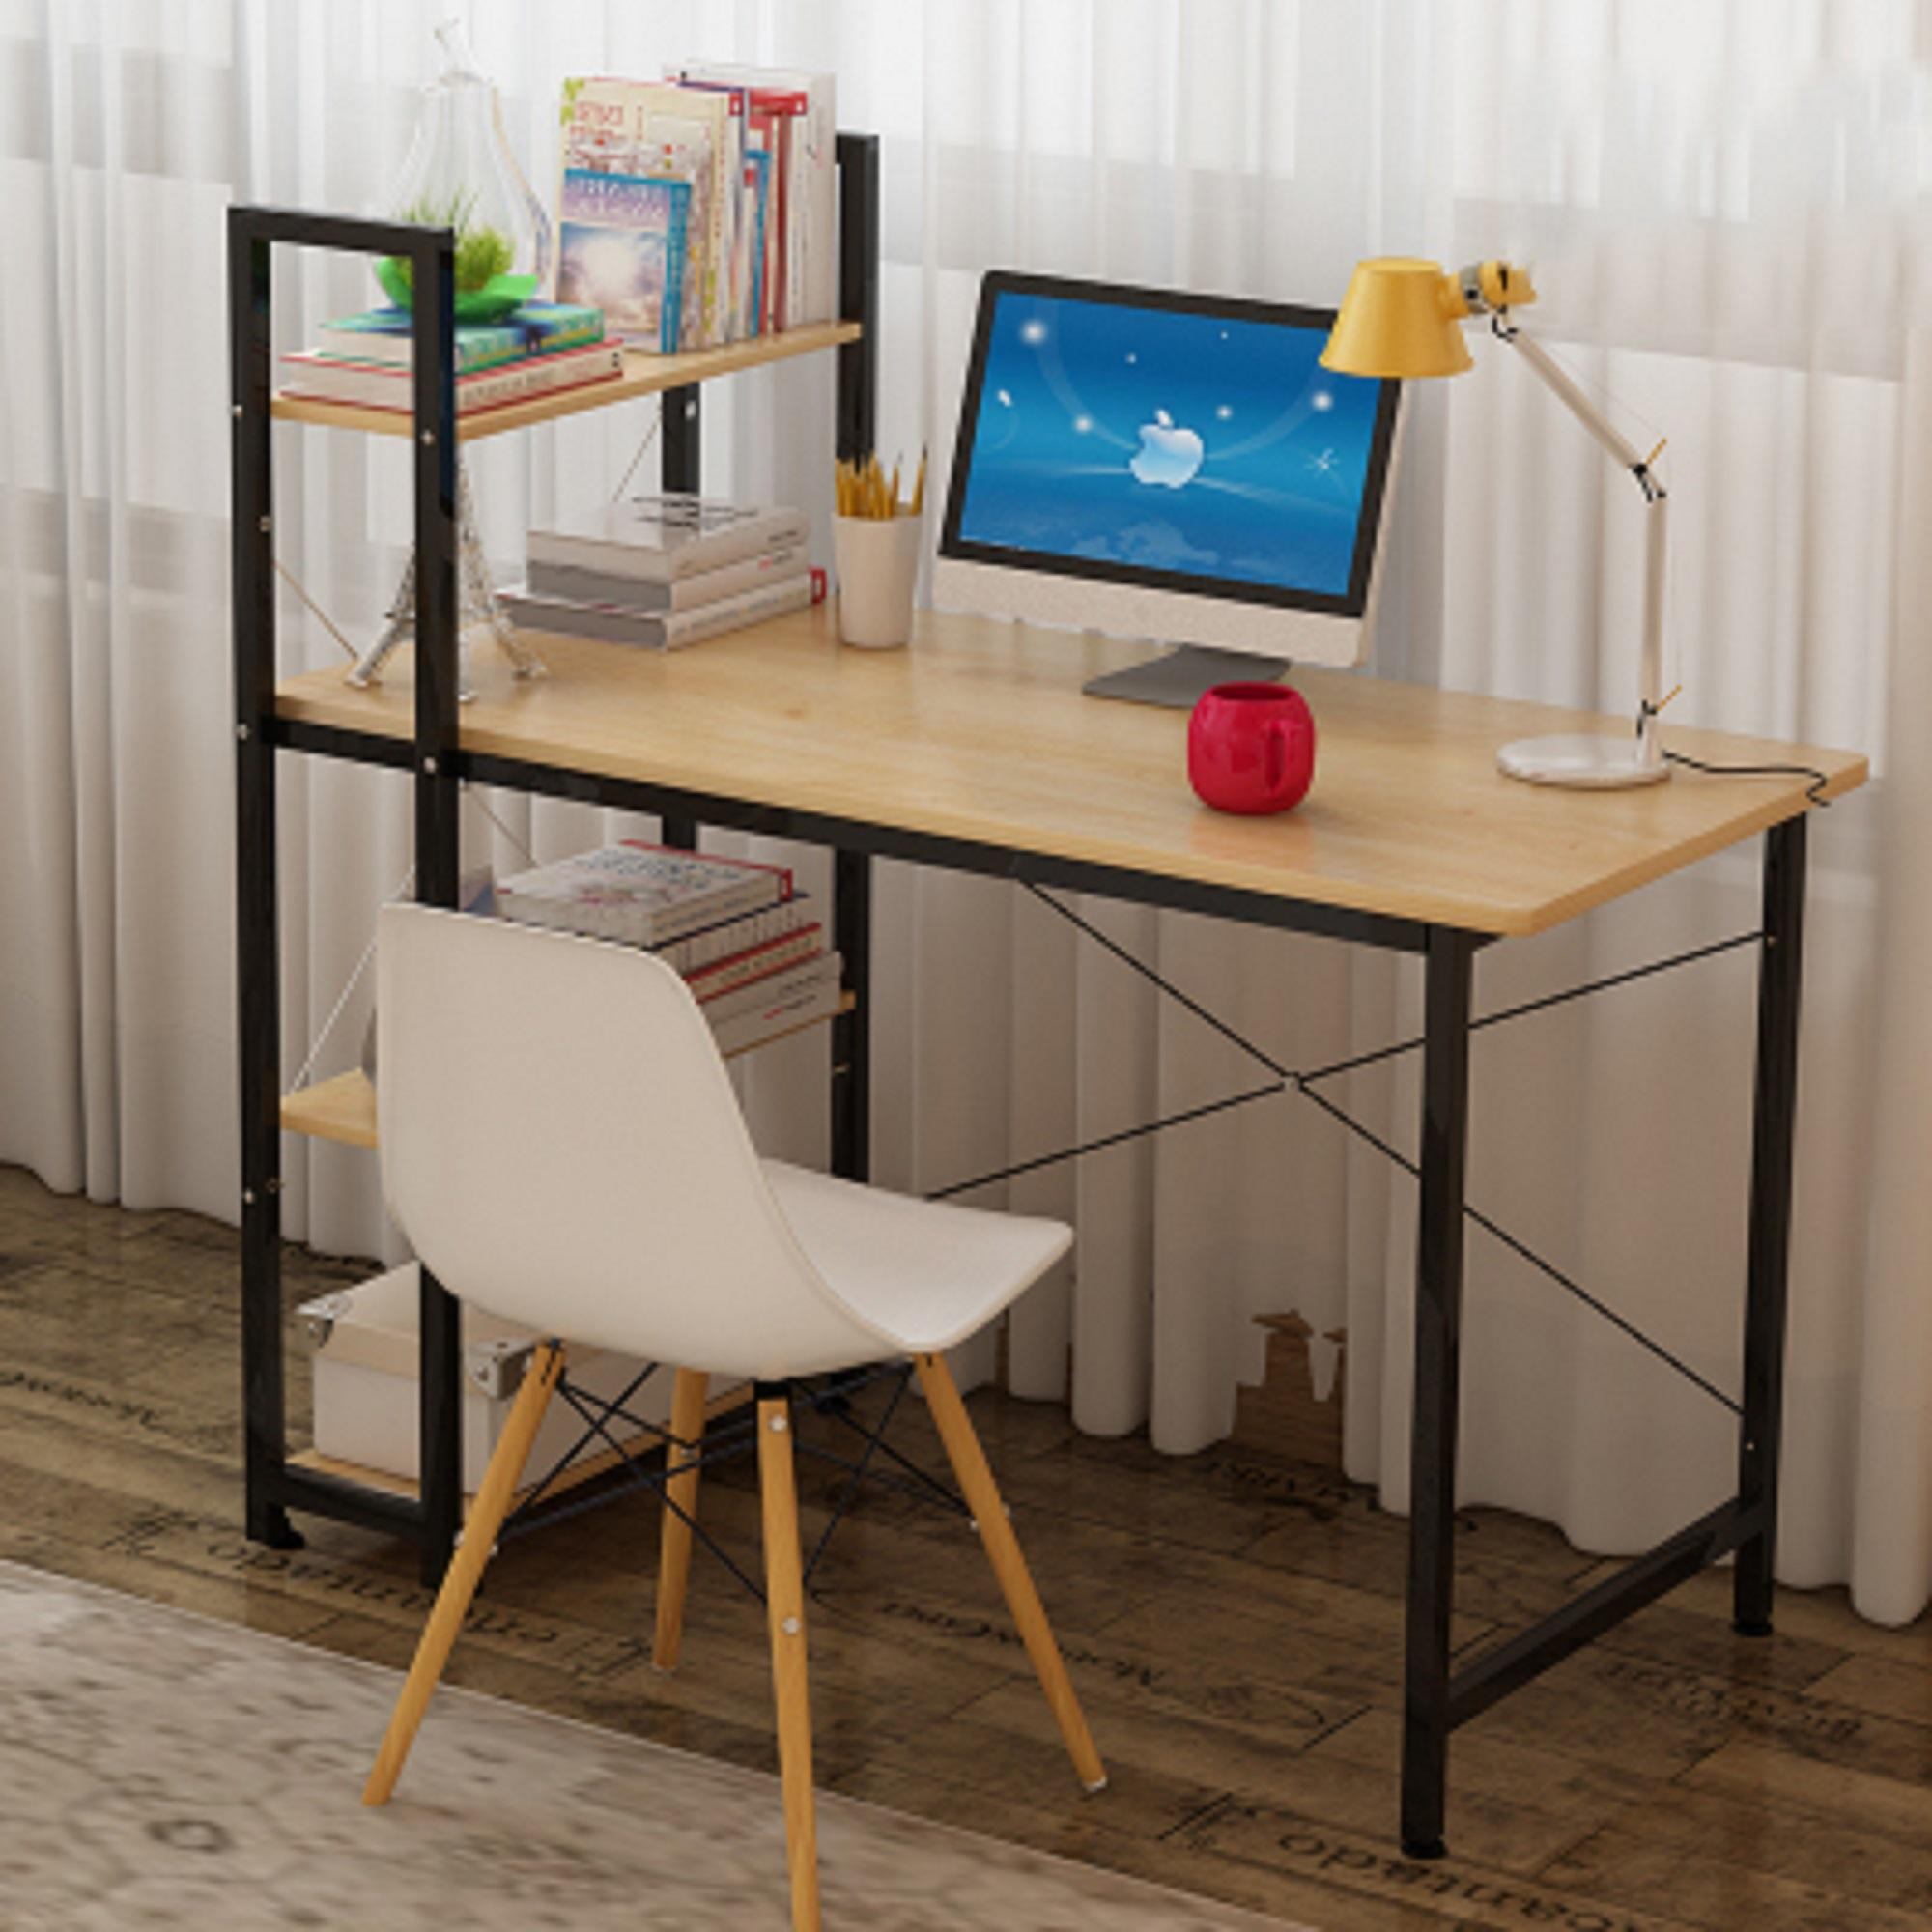 Clifton TB-60YP Yellow Pear 60x120cm Computer Desk Table ...